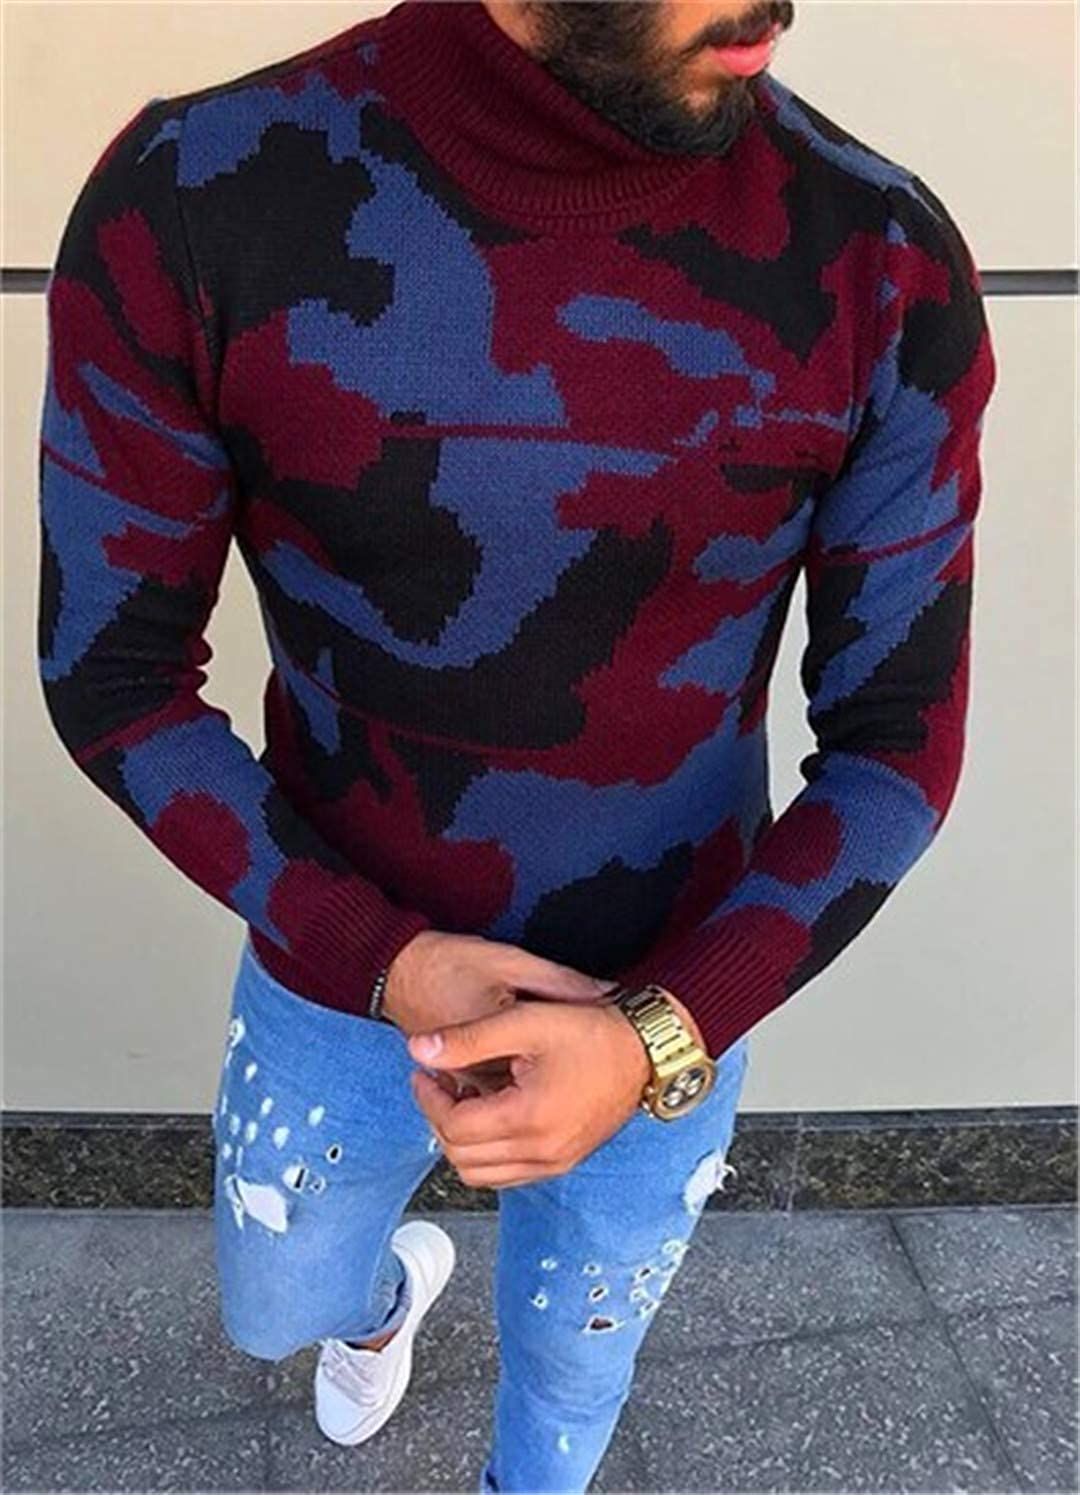 JGYFTJ Mens Autumn Turtleneck Sweaters Male Casual Camouflage Sweater Pullover Knitwear Slim Fit Neck Knitted Sweater